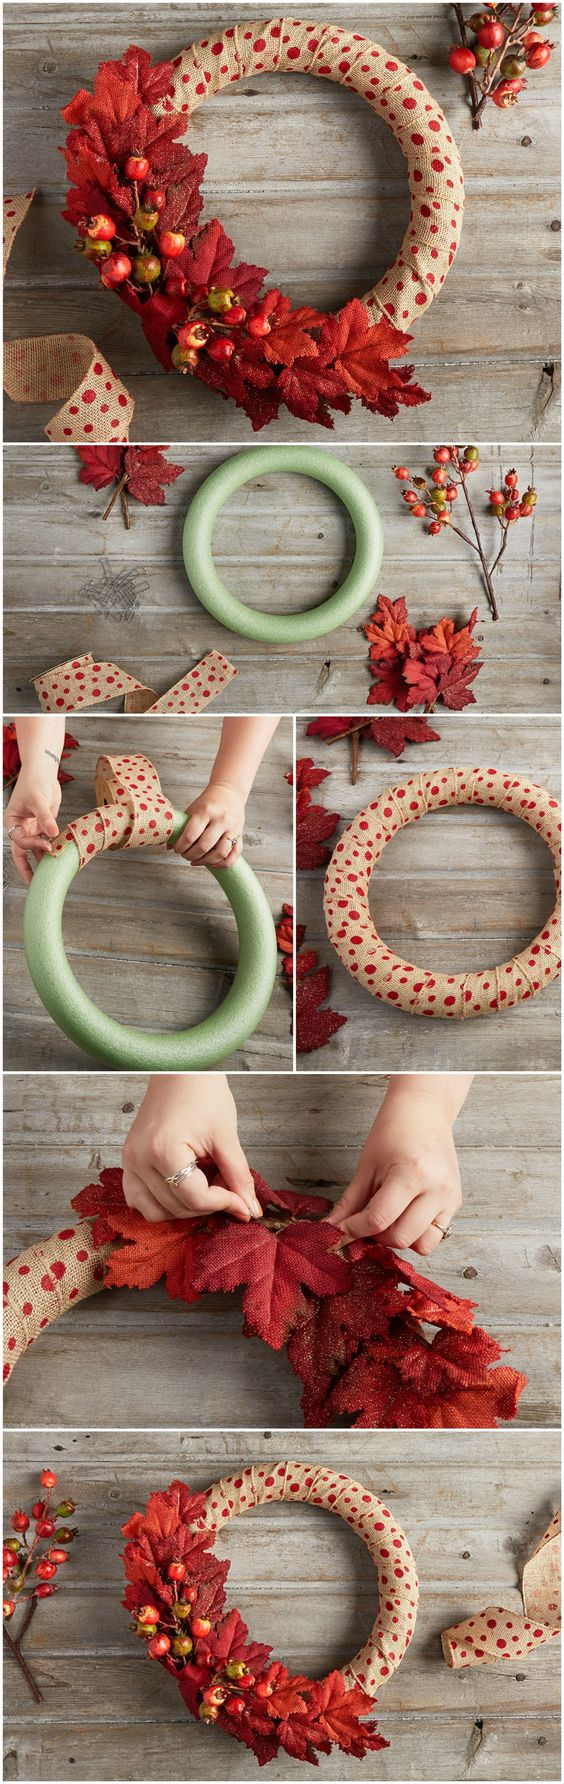 DIY Polka Dot Fall Wreath.